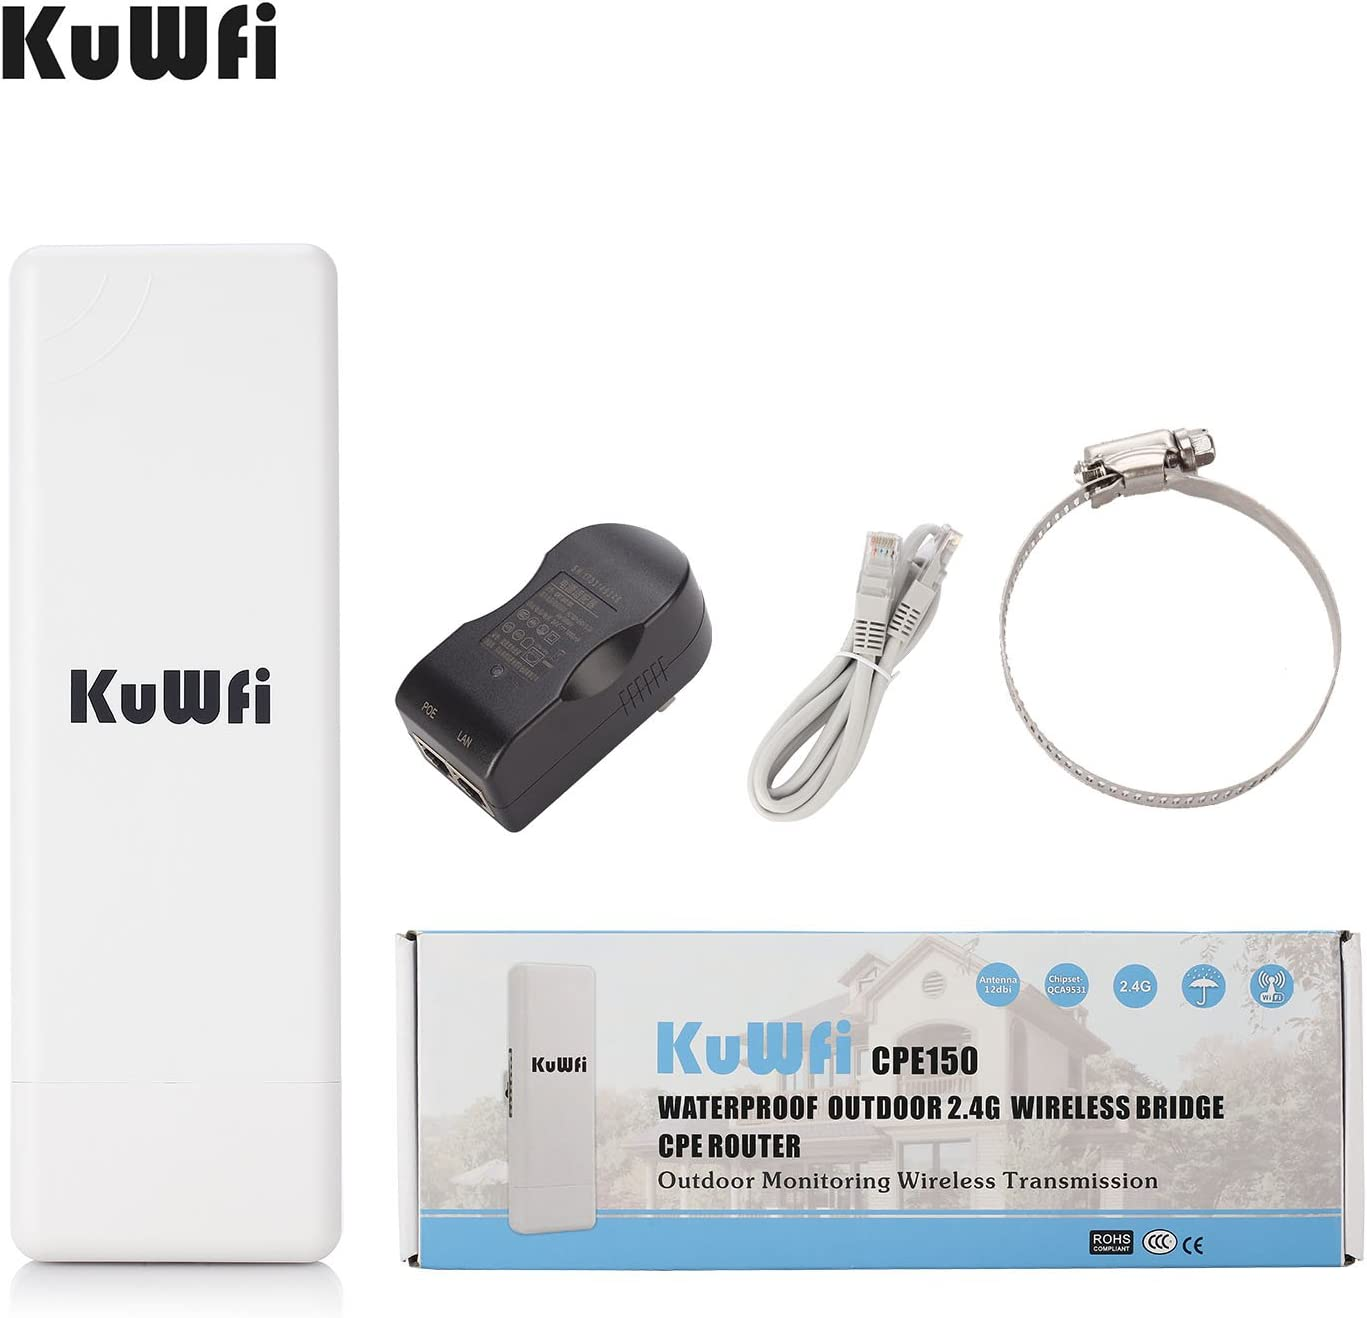 KuWFi Waterproof Outdoor Wireless Bridge Outdoor CPE Point to Point 2KM Distance Outdoor Wireless Access Point CPE Router with WiFi Long Range Router More WiFi Range 1000mW 150Mbps WiFi Access Point